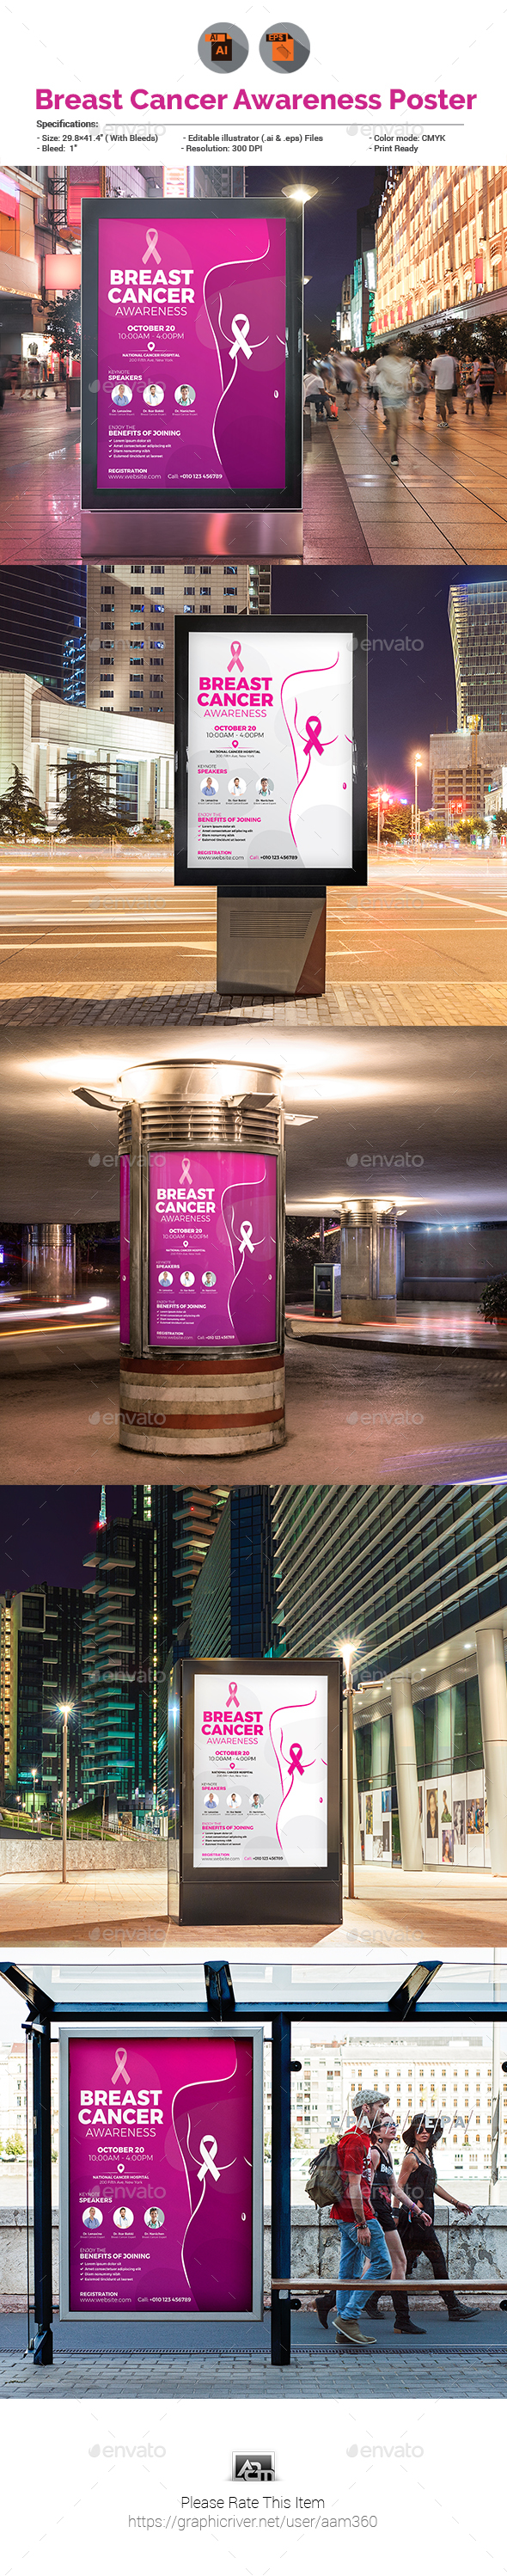 Breast Cancer Awareness Poster - Signage Print Templates